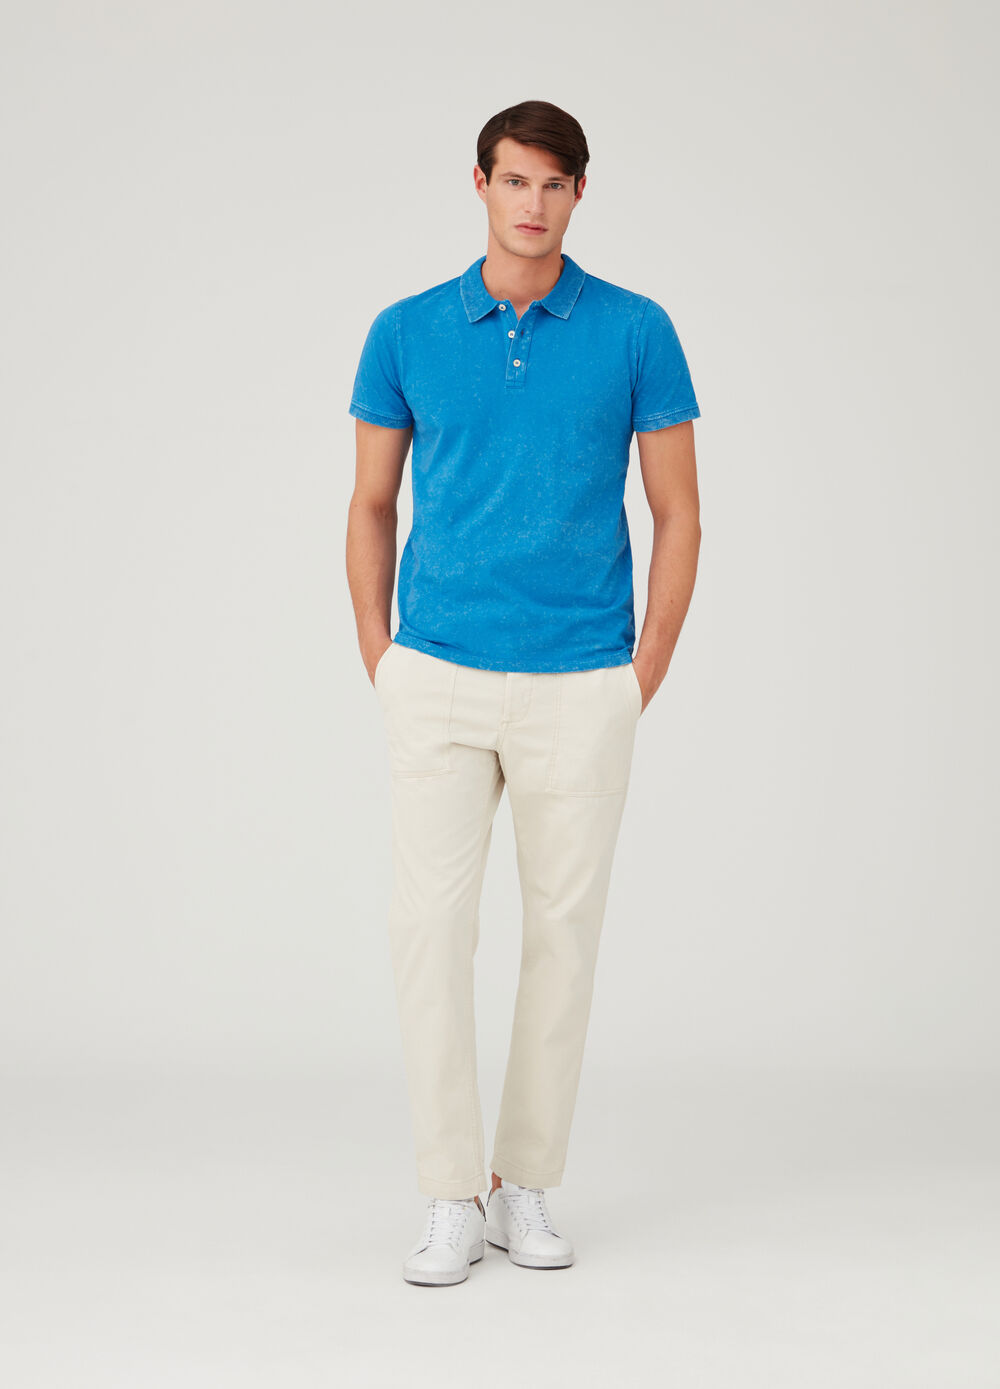 Jersey polo shirt with ribbed details